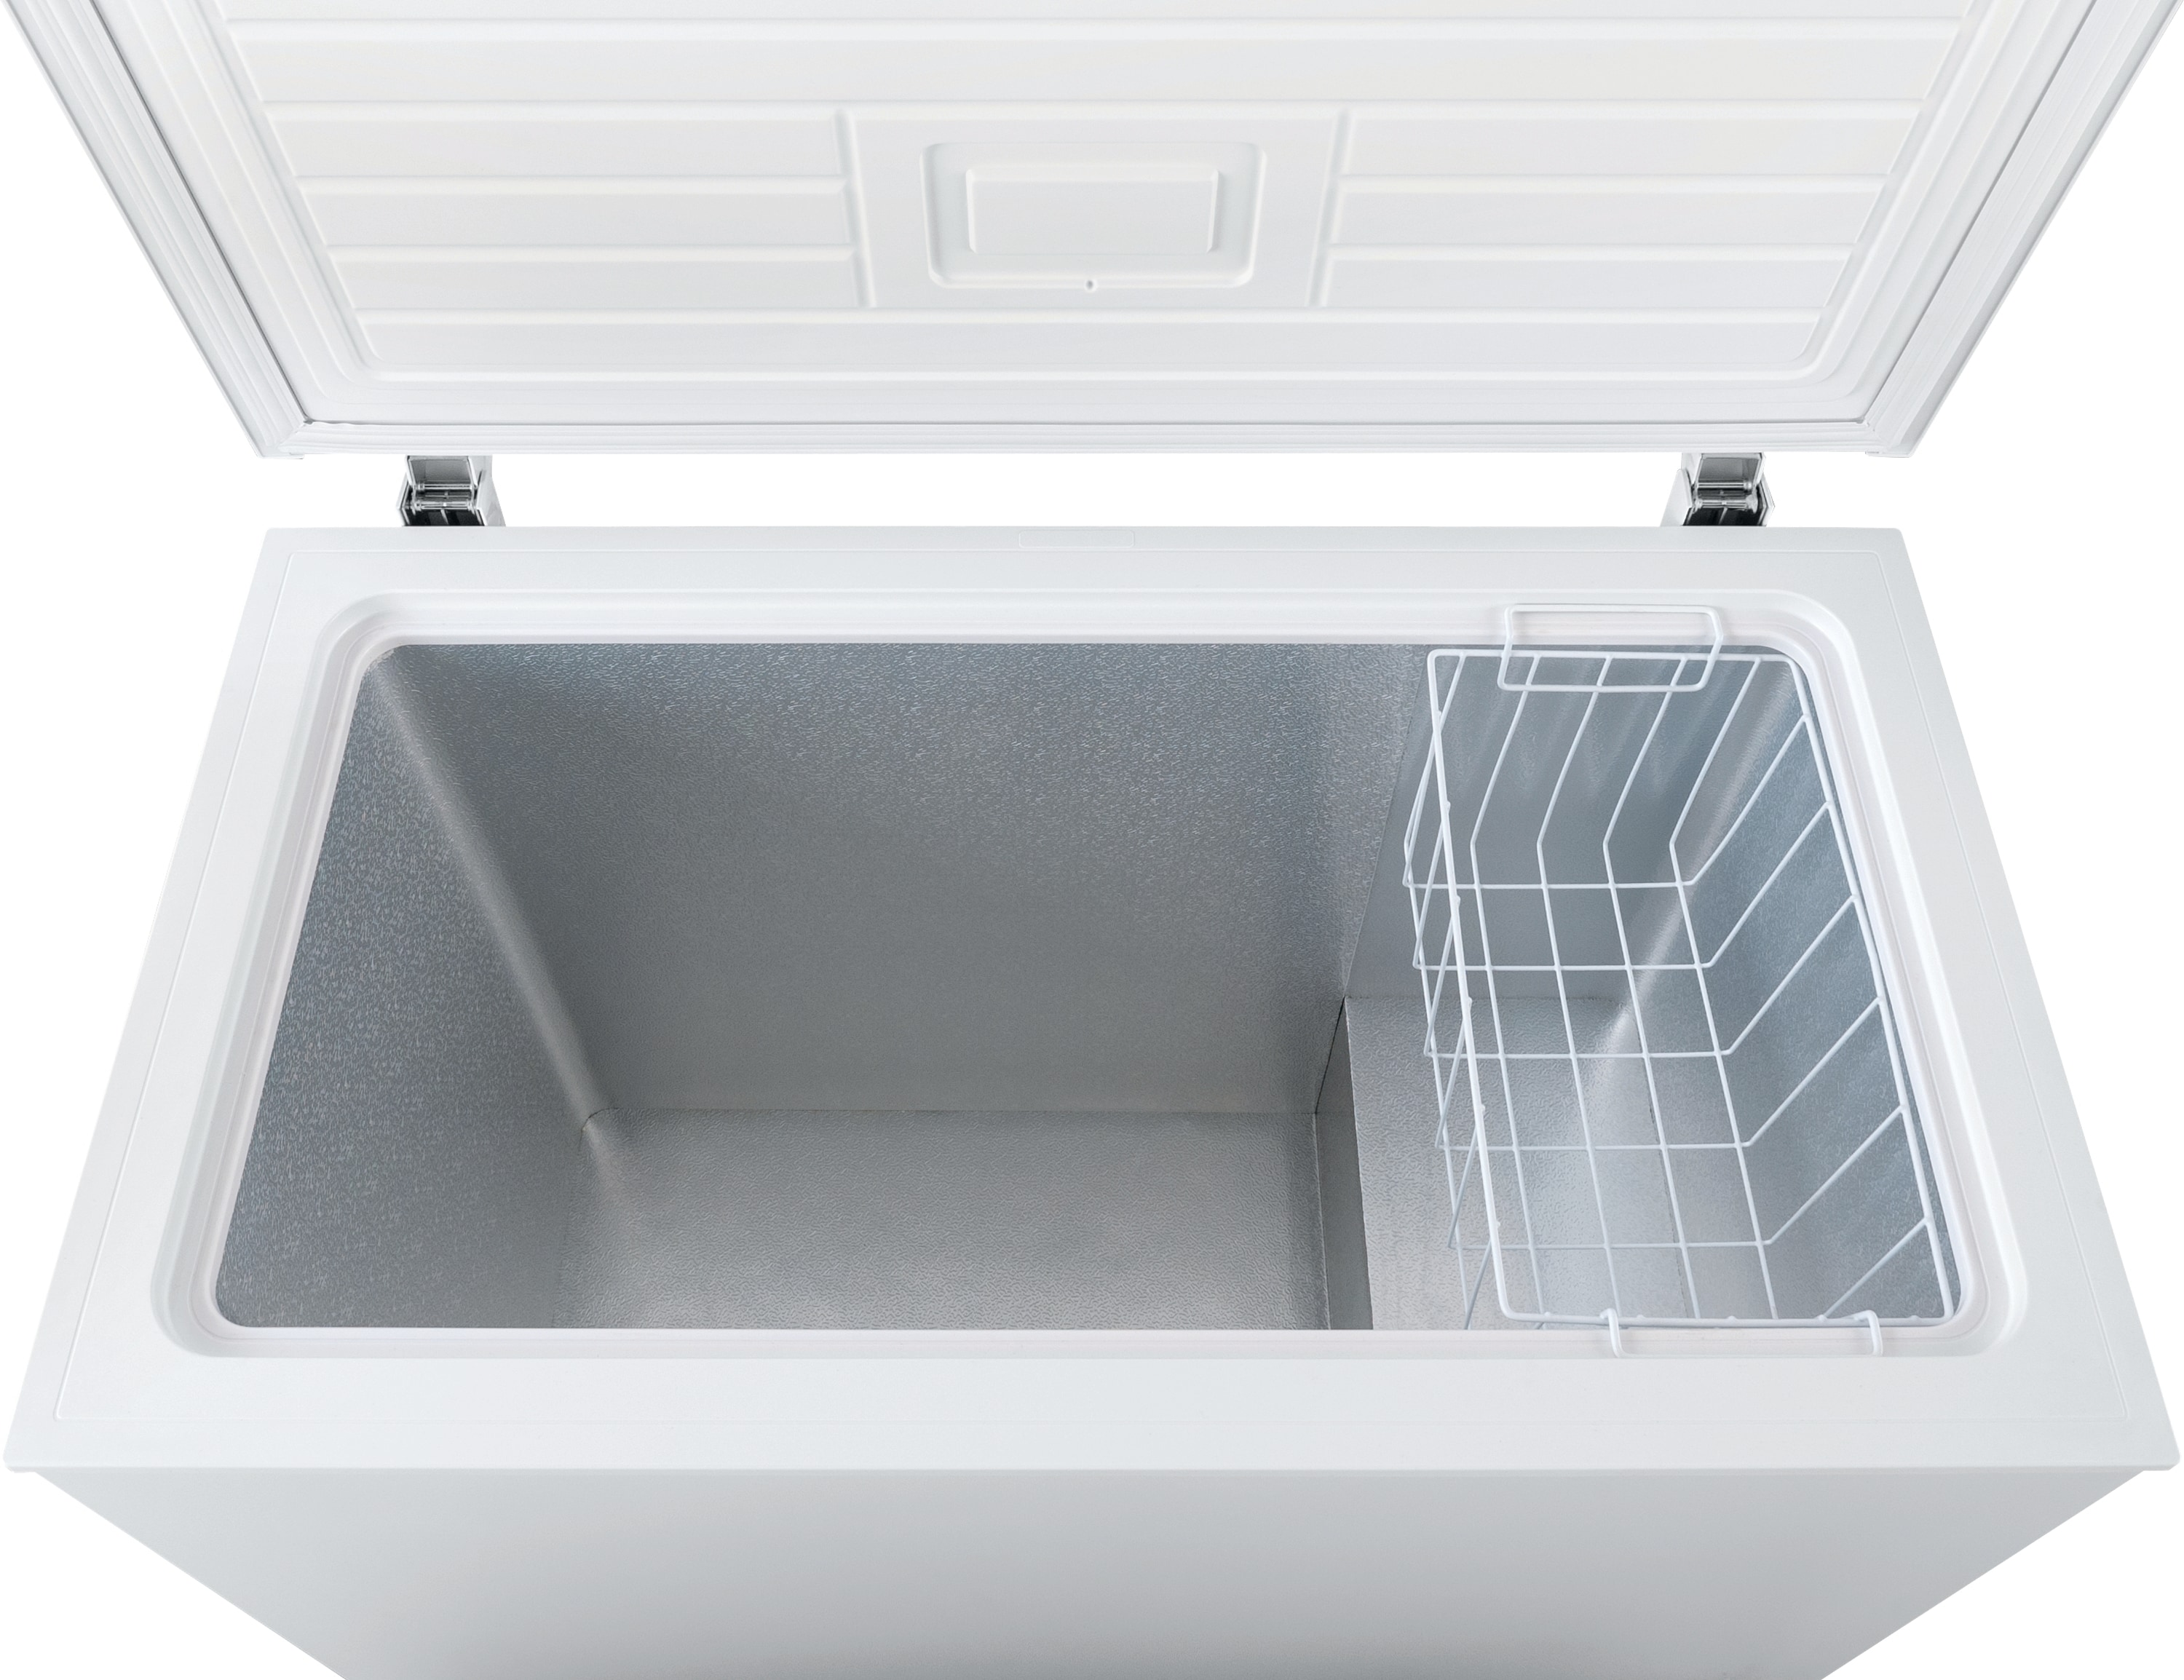 8.7 Cu. Ft. Chest Freezer